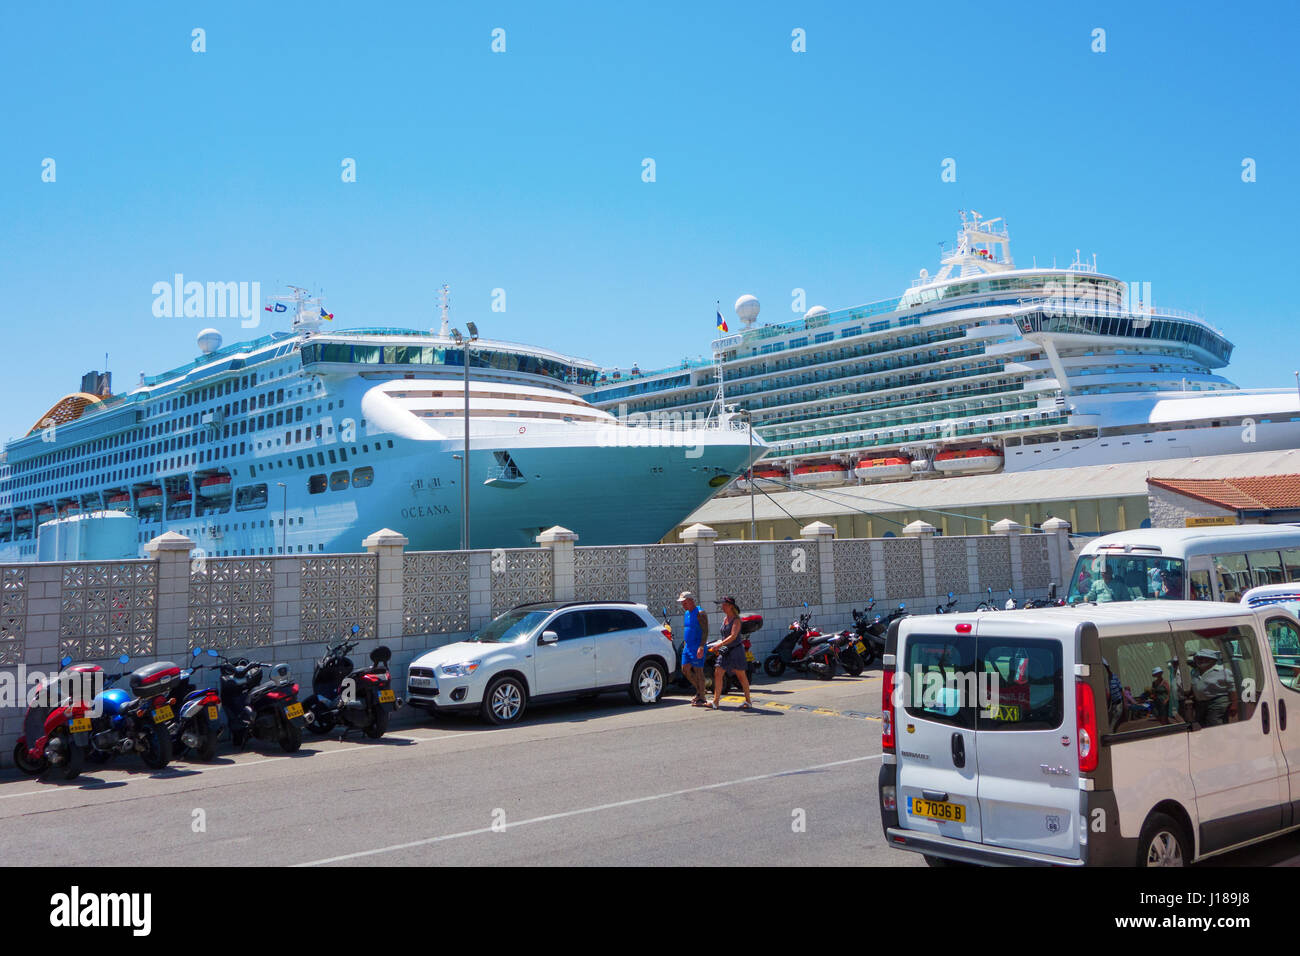 On the Island of Gibraltar. Dockside wit P&O Cruise ships Azura and Oceana - Stock Image